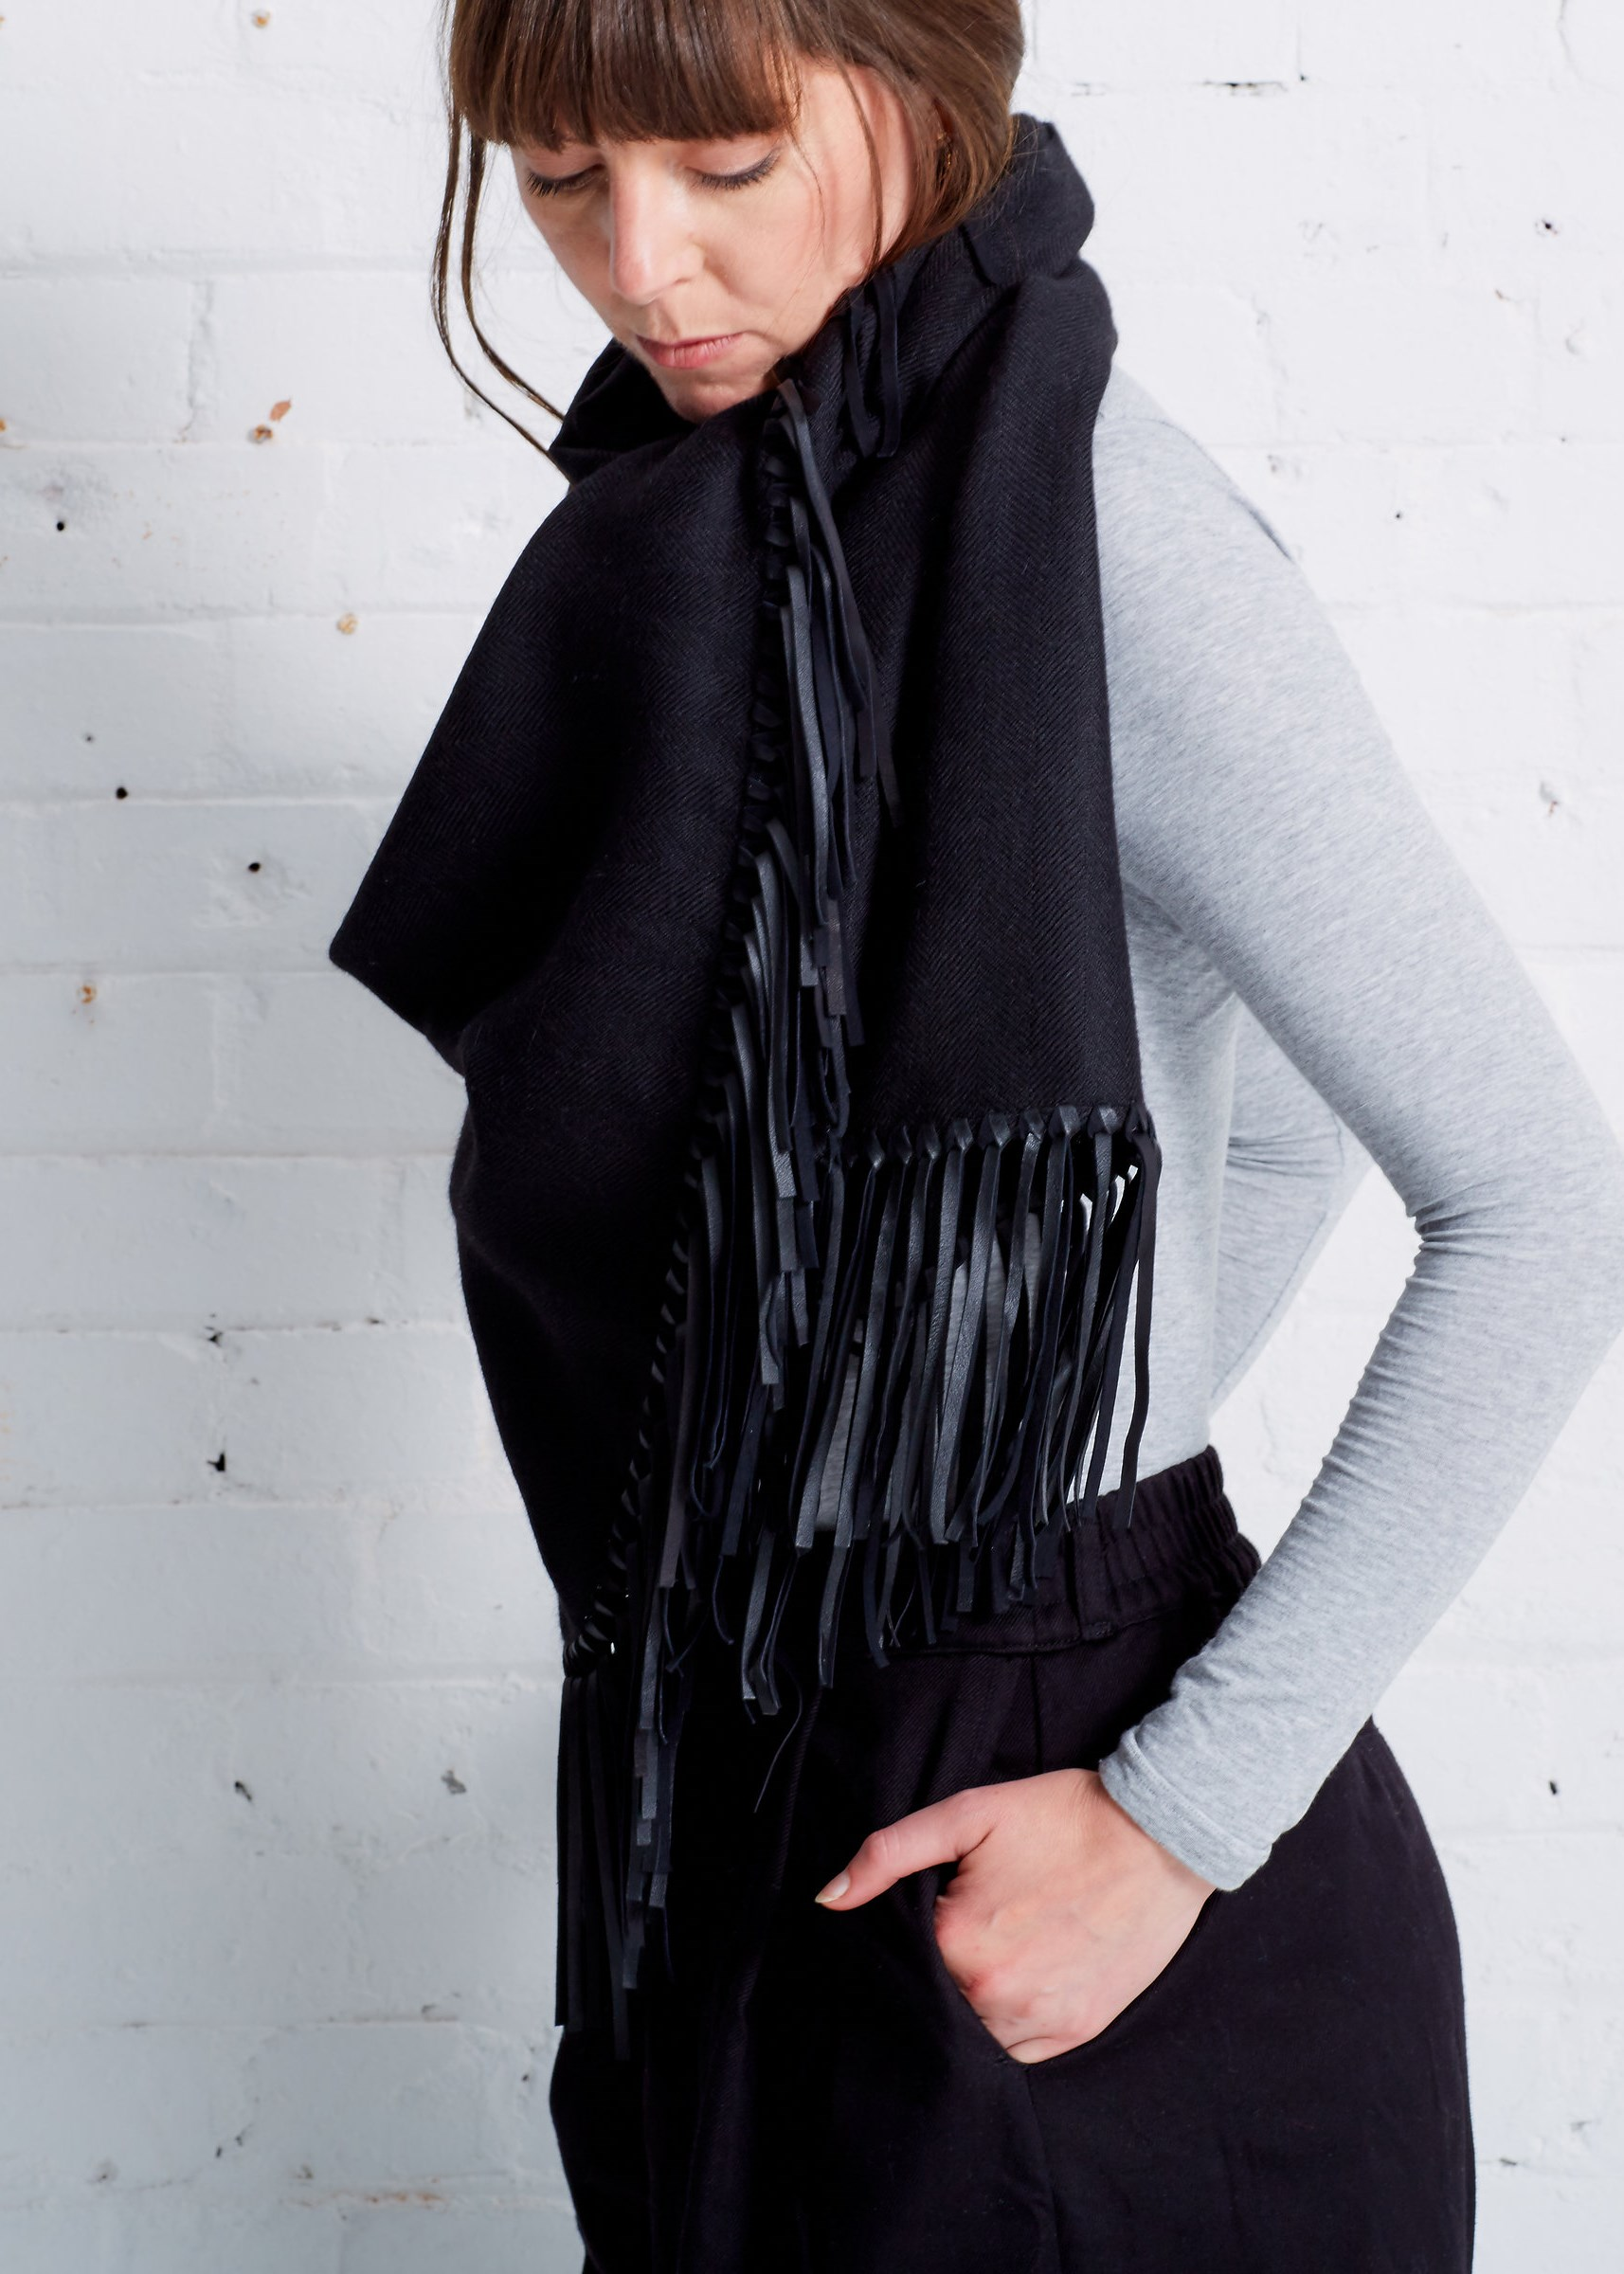 Aletha Baby Alpaca Scarf by A Peace Treaty at Gather&See, £435